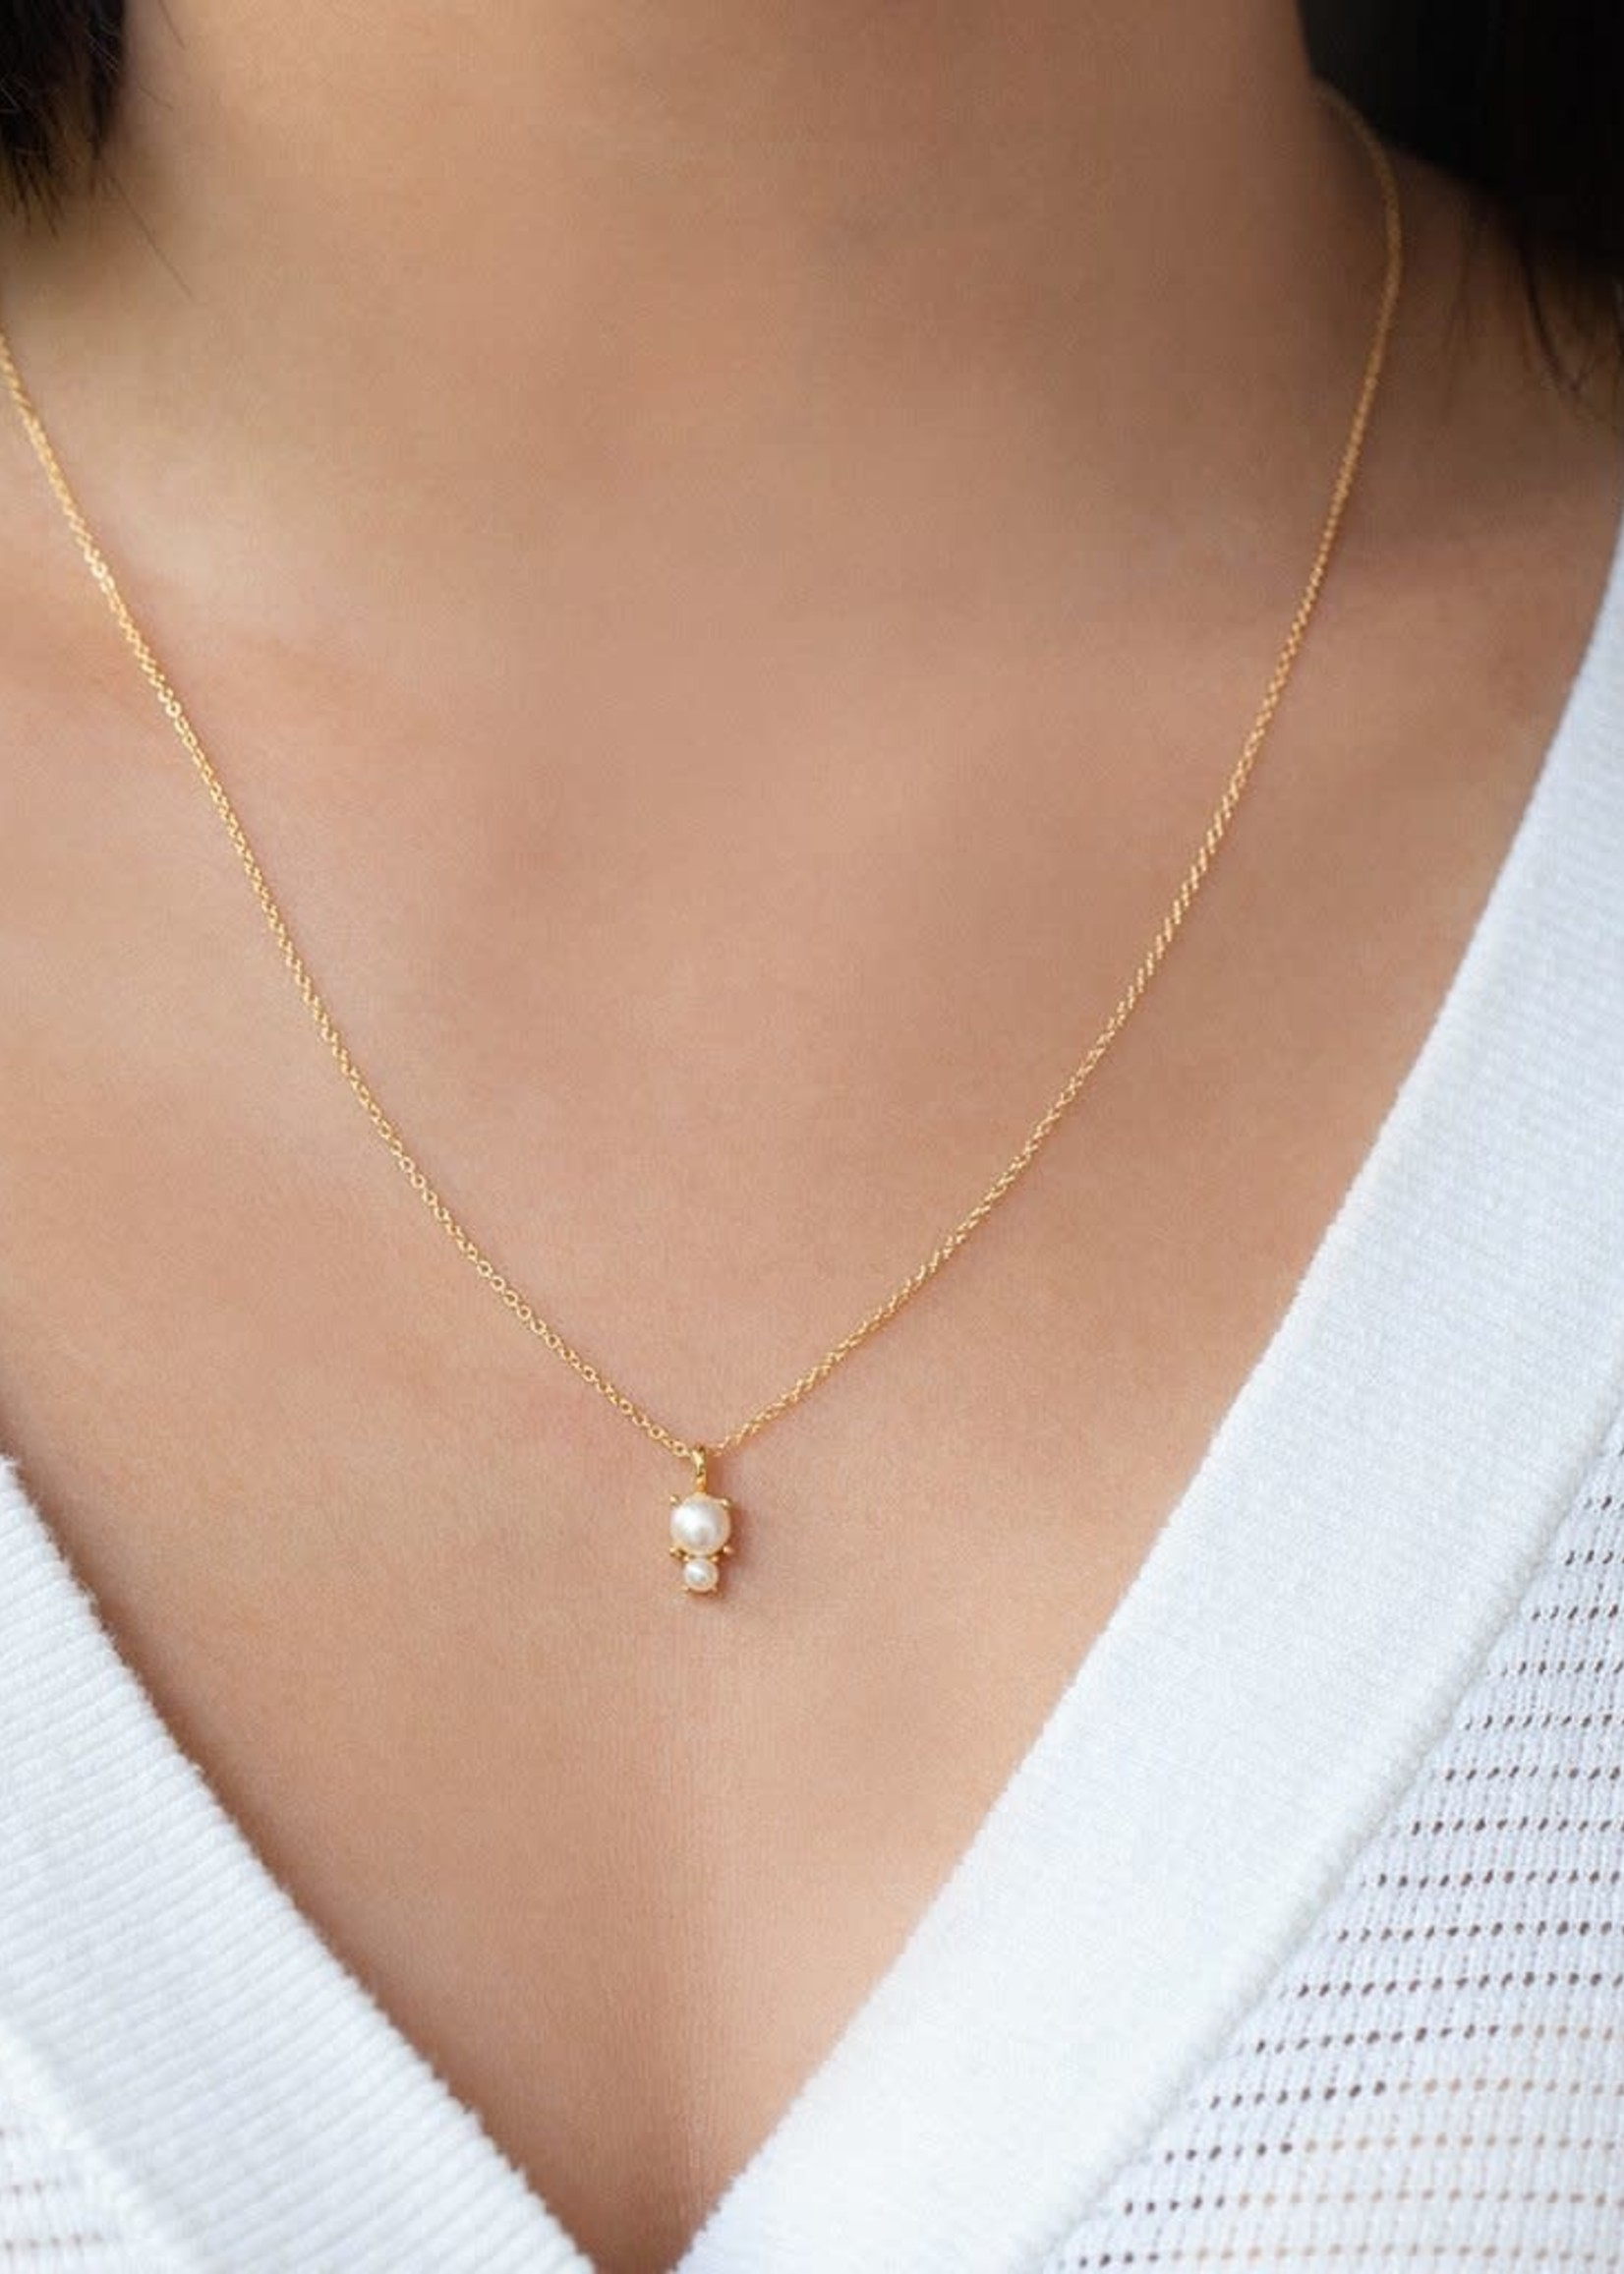 LEAH ALEXANDRA DUO pearl necklace, Gold